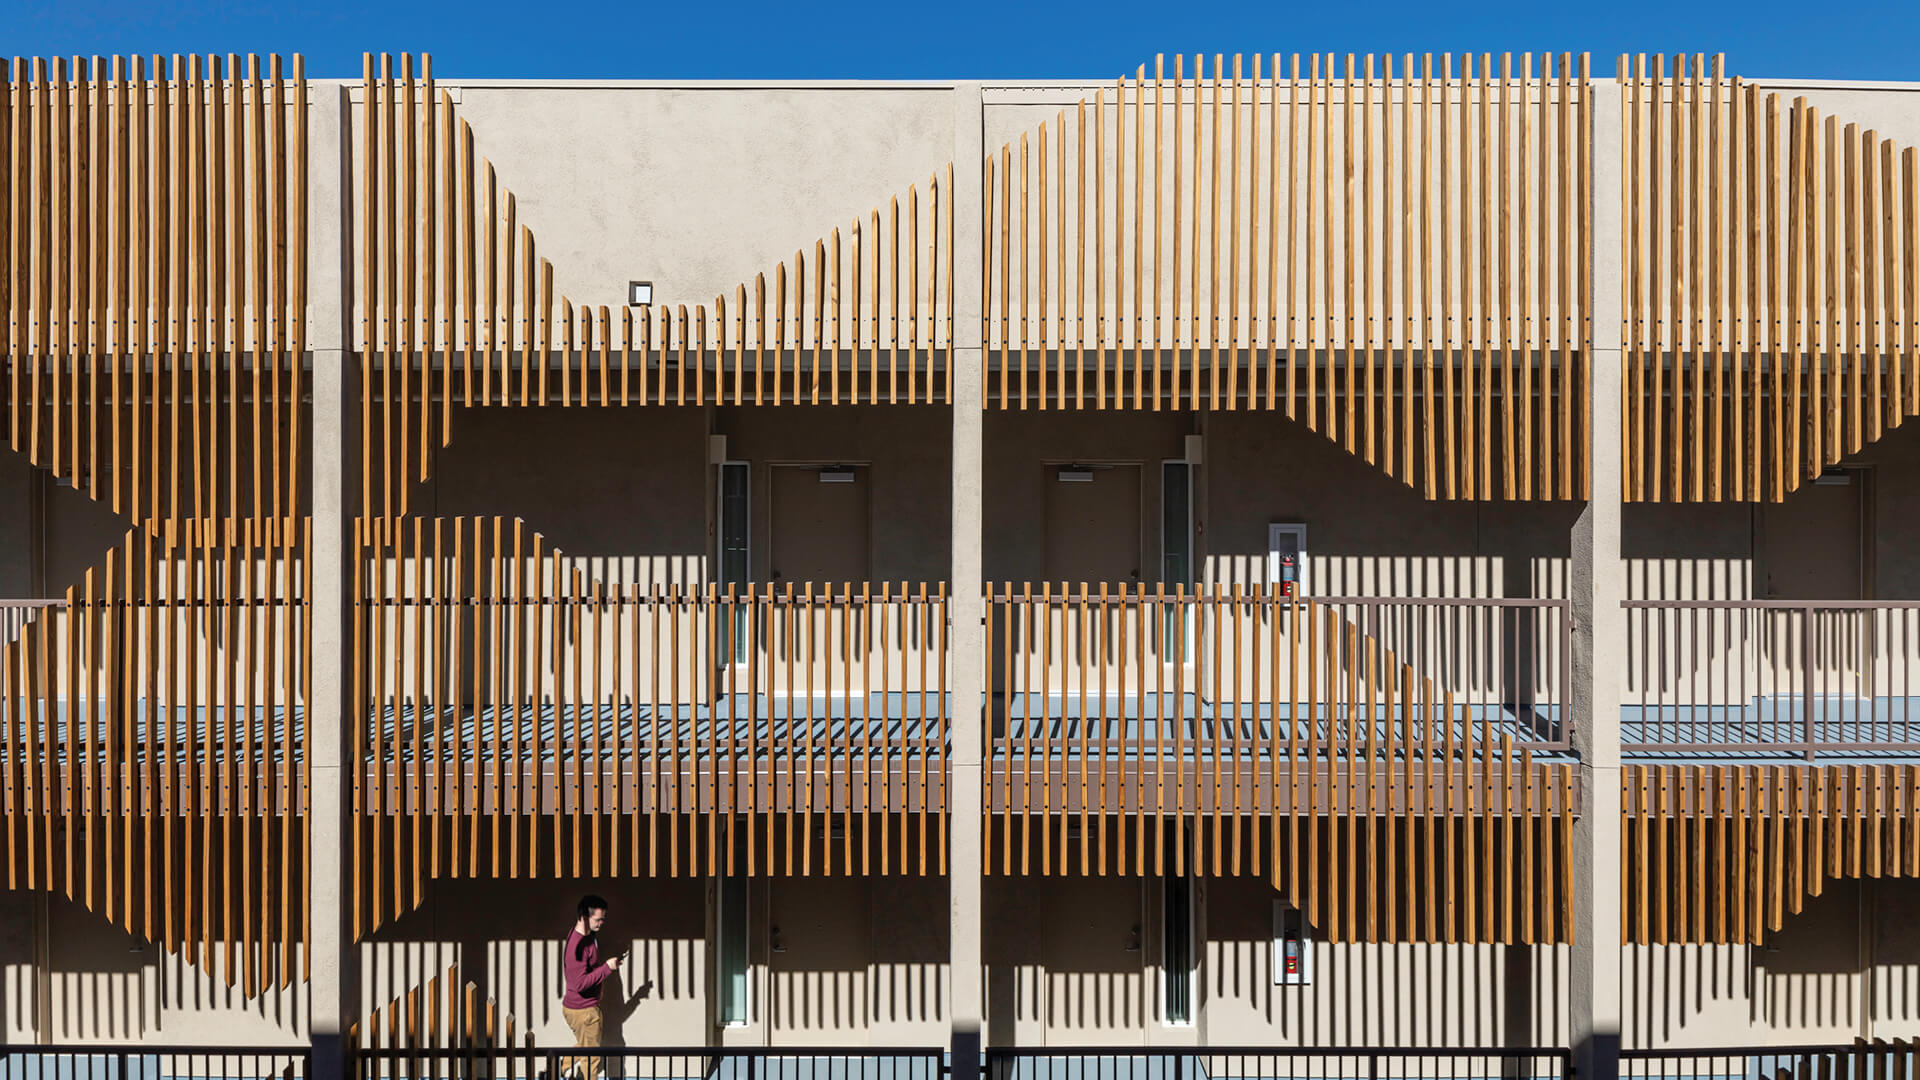 Imagine Village Apartments by Hatch Colasuonno and Relativity Architects (HC+RA) in Los Angeles | Hatch Colasuonno + Relativity Architects | California | STIRworld